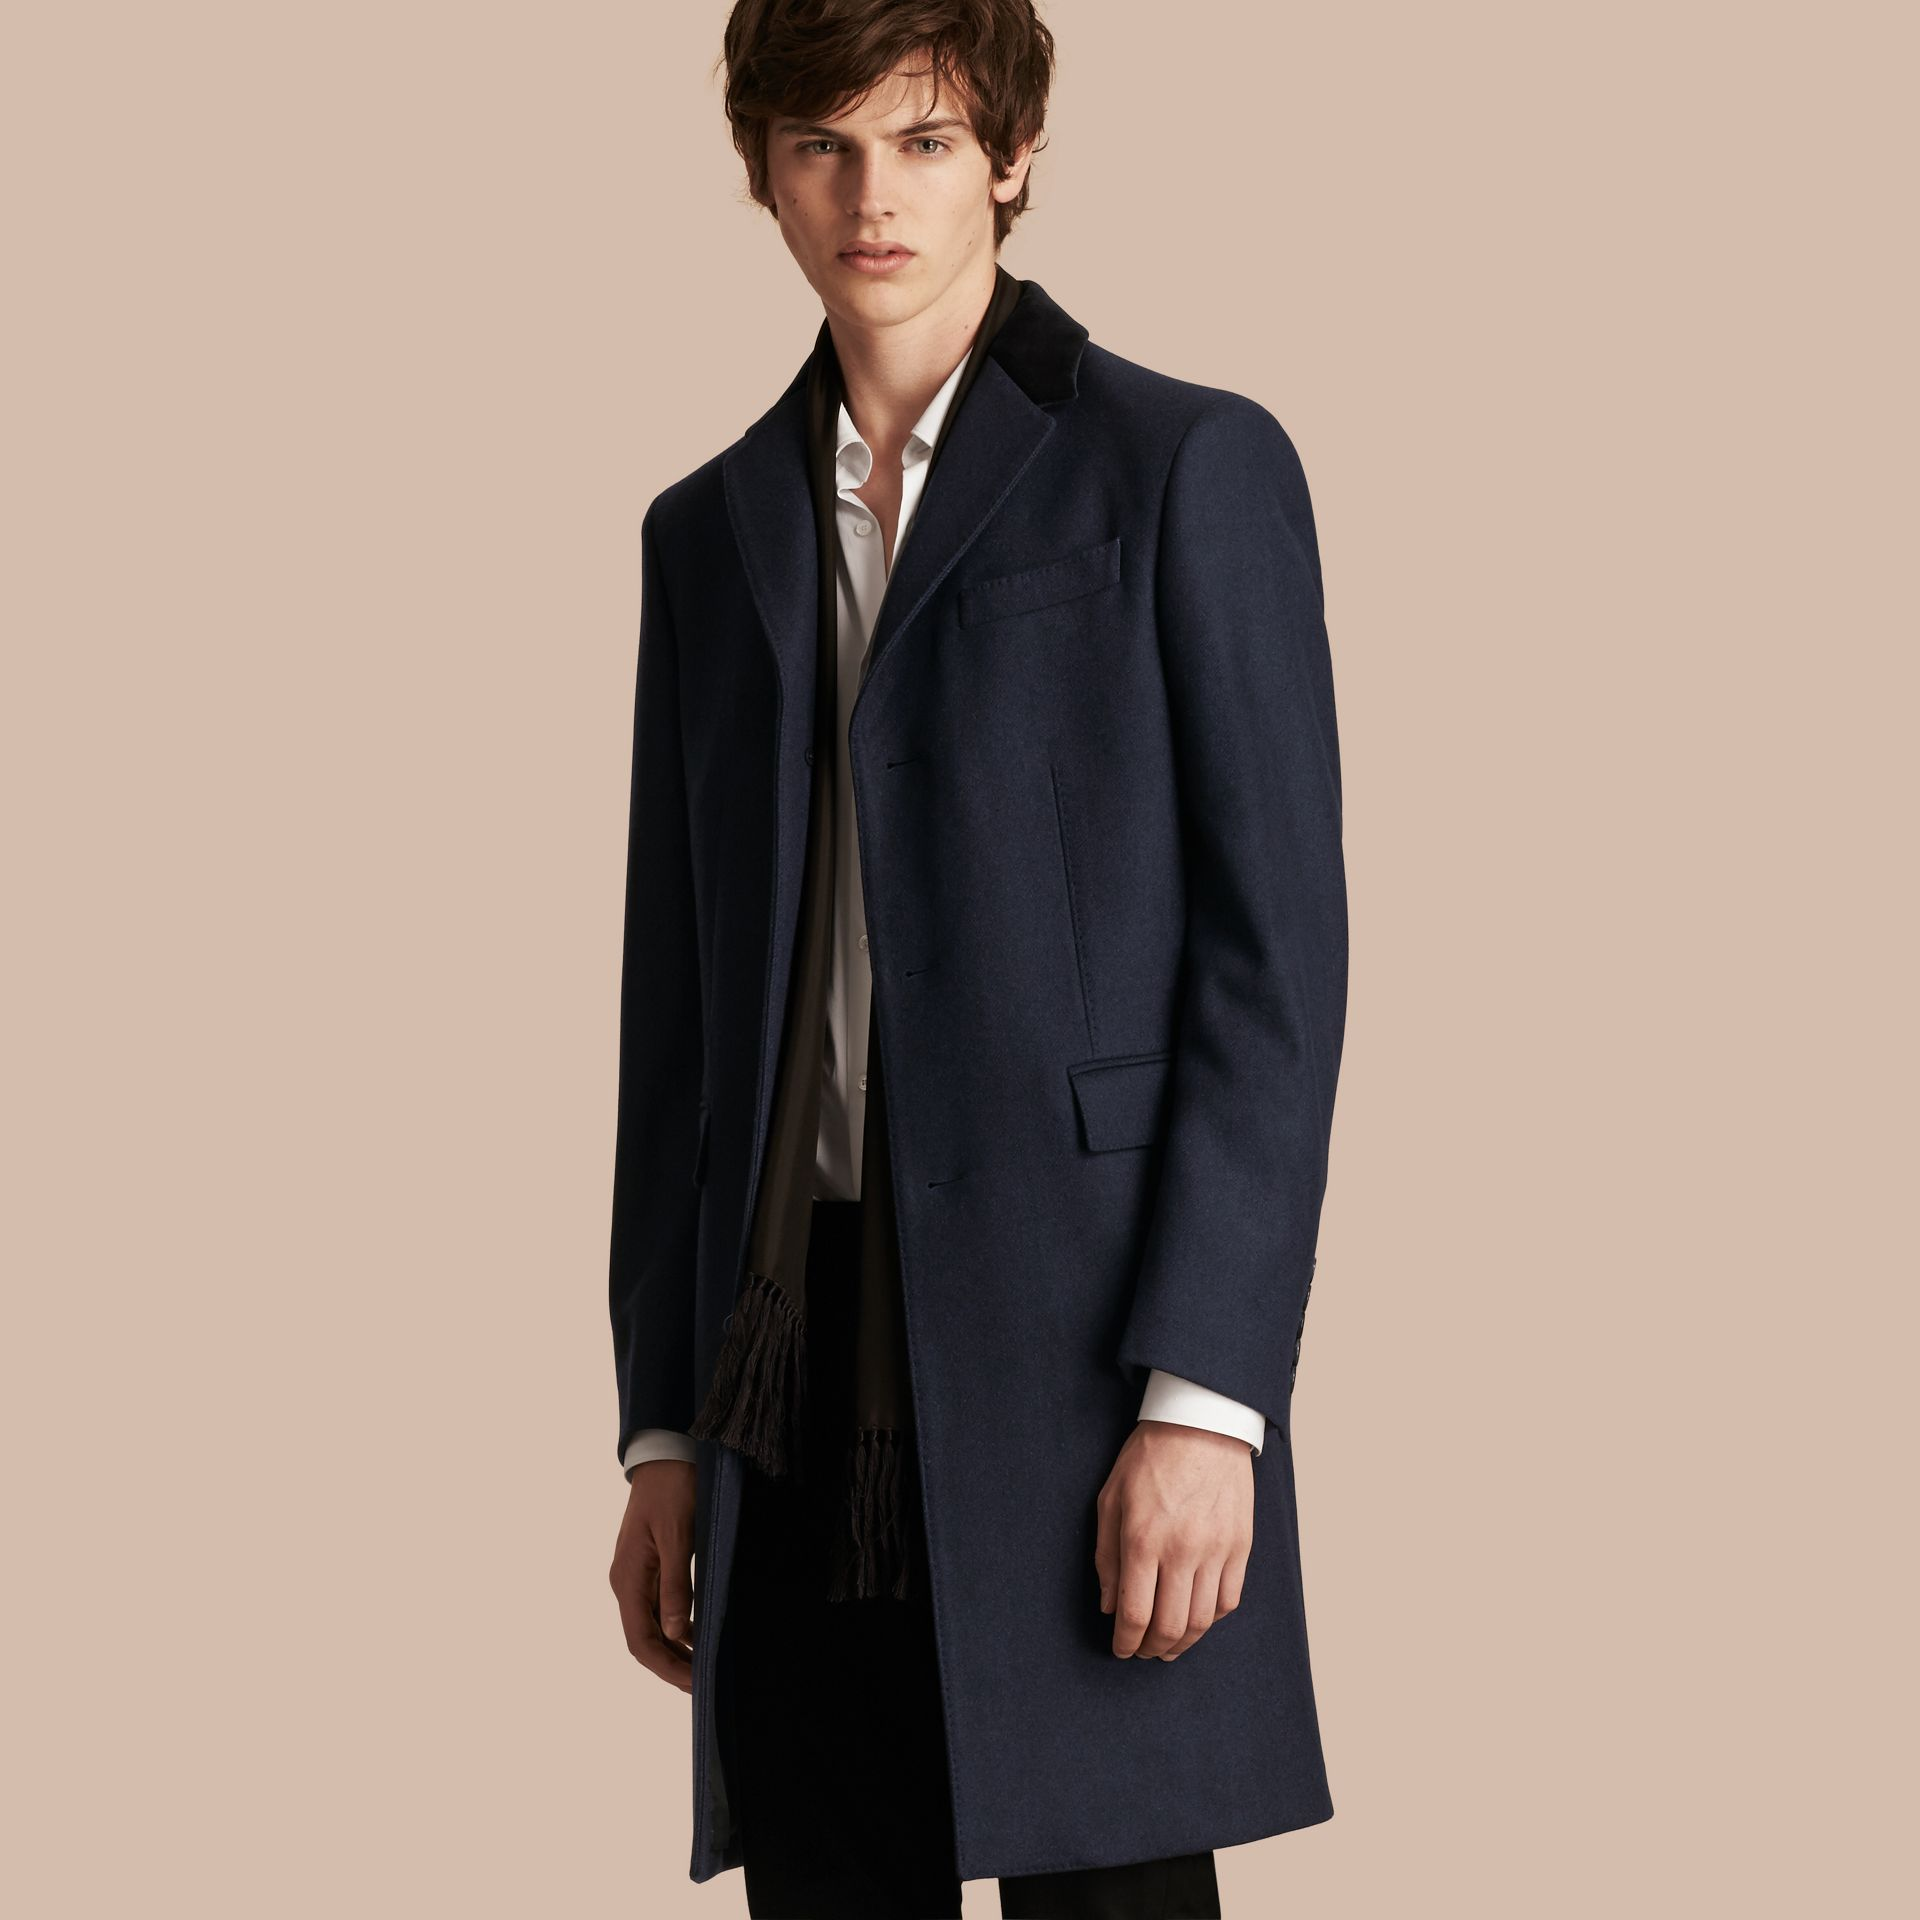 Storm blue Wool Cashmere Coat with Velvet Collar - gallery image 1